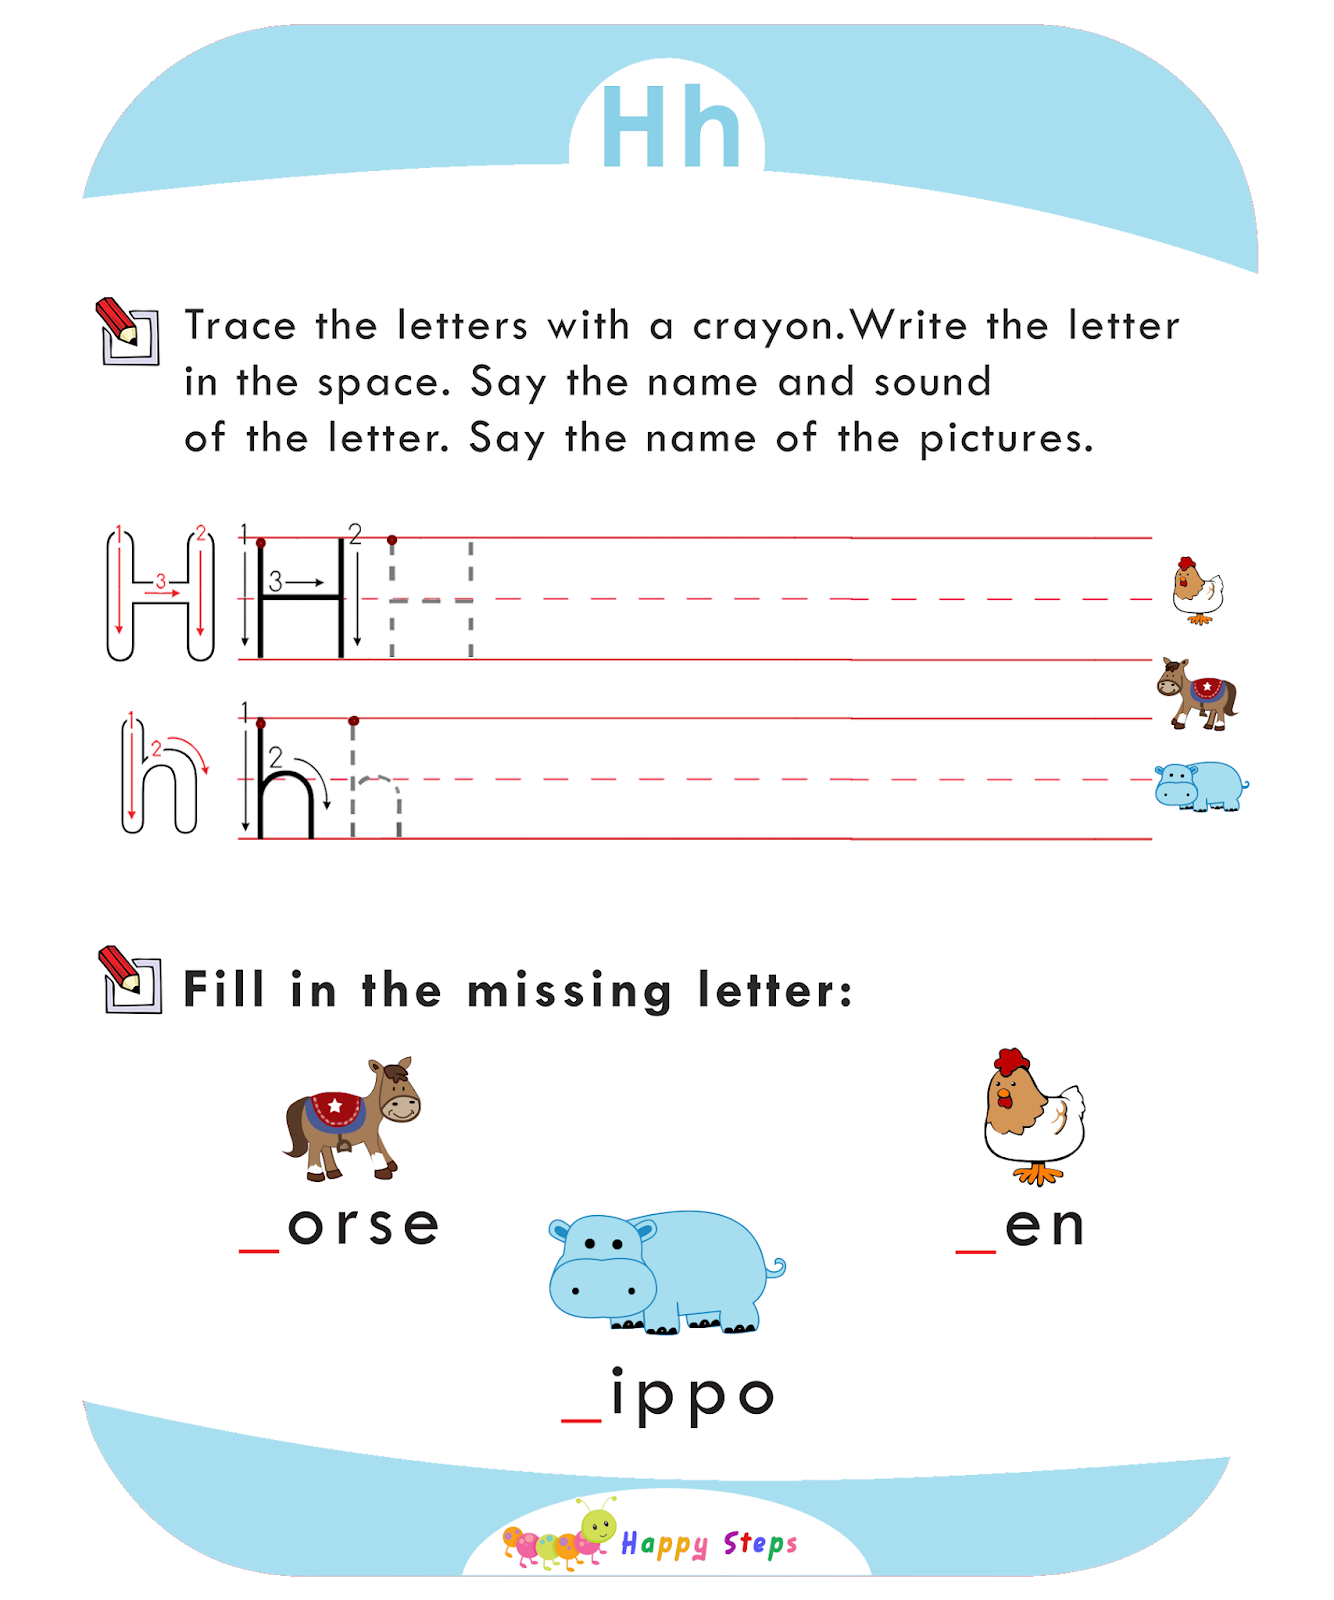 Activity Worksheet 2 Letter H